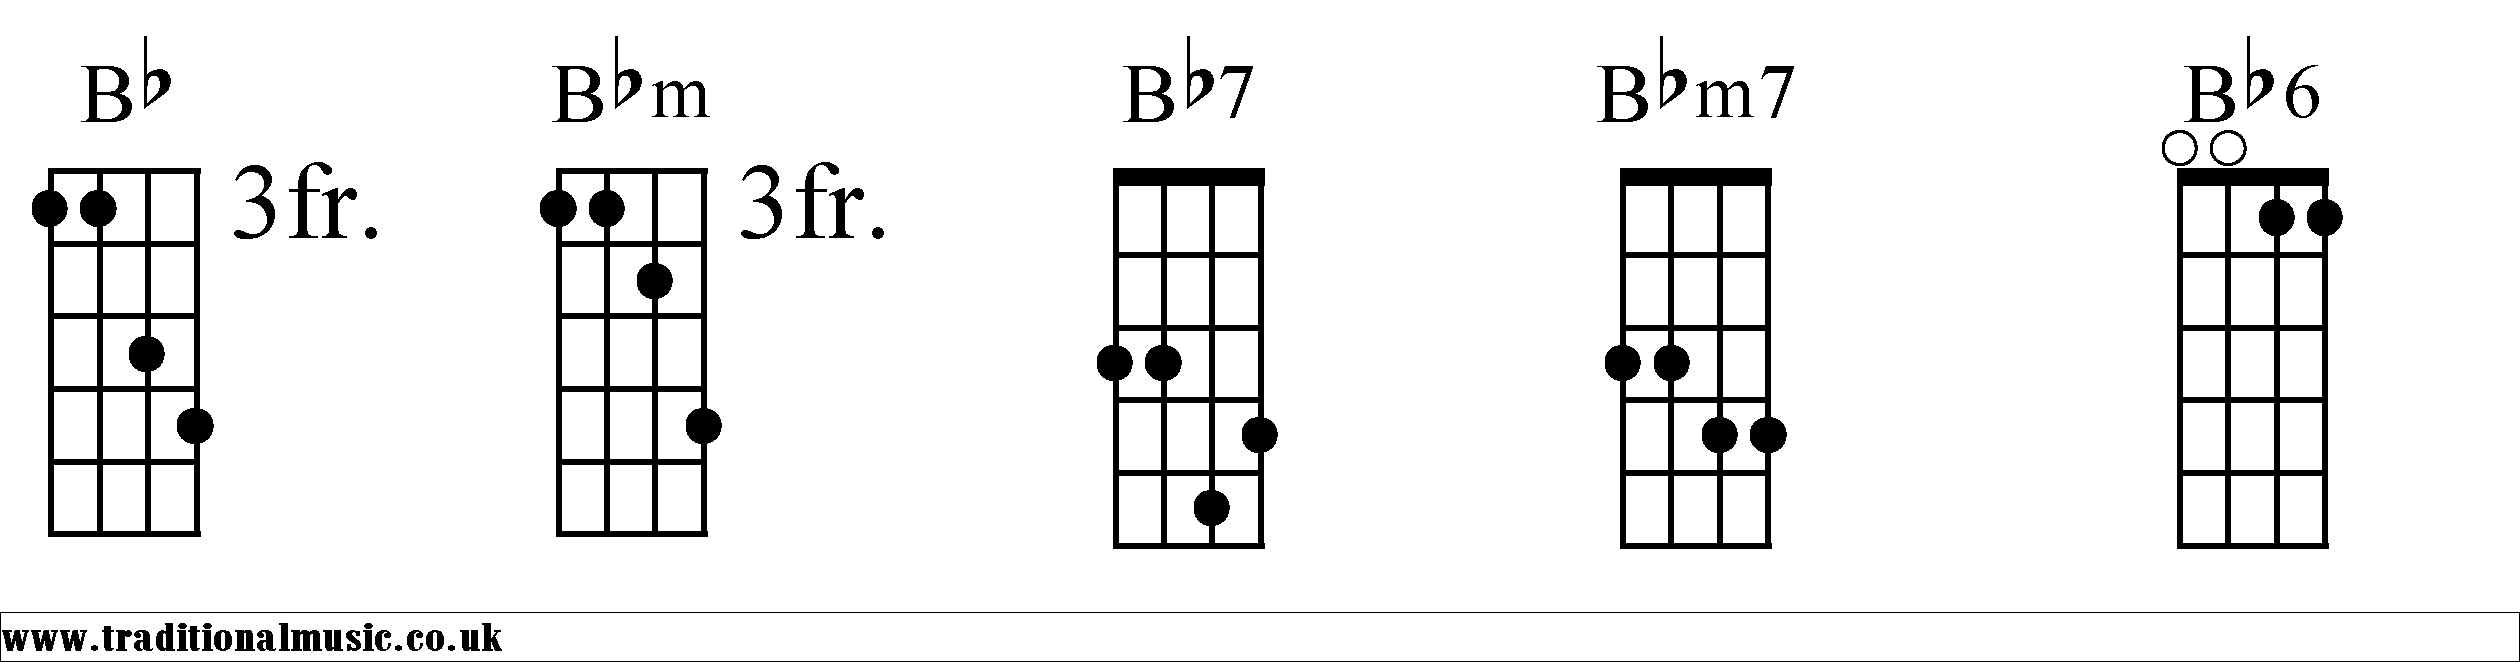 Unique Bb Chord Guitar Easy Crest Beginner Guitar Piano Chords